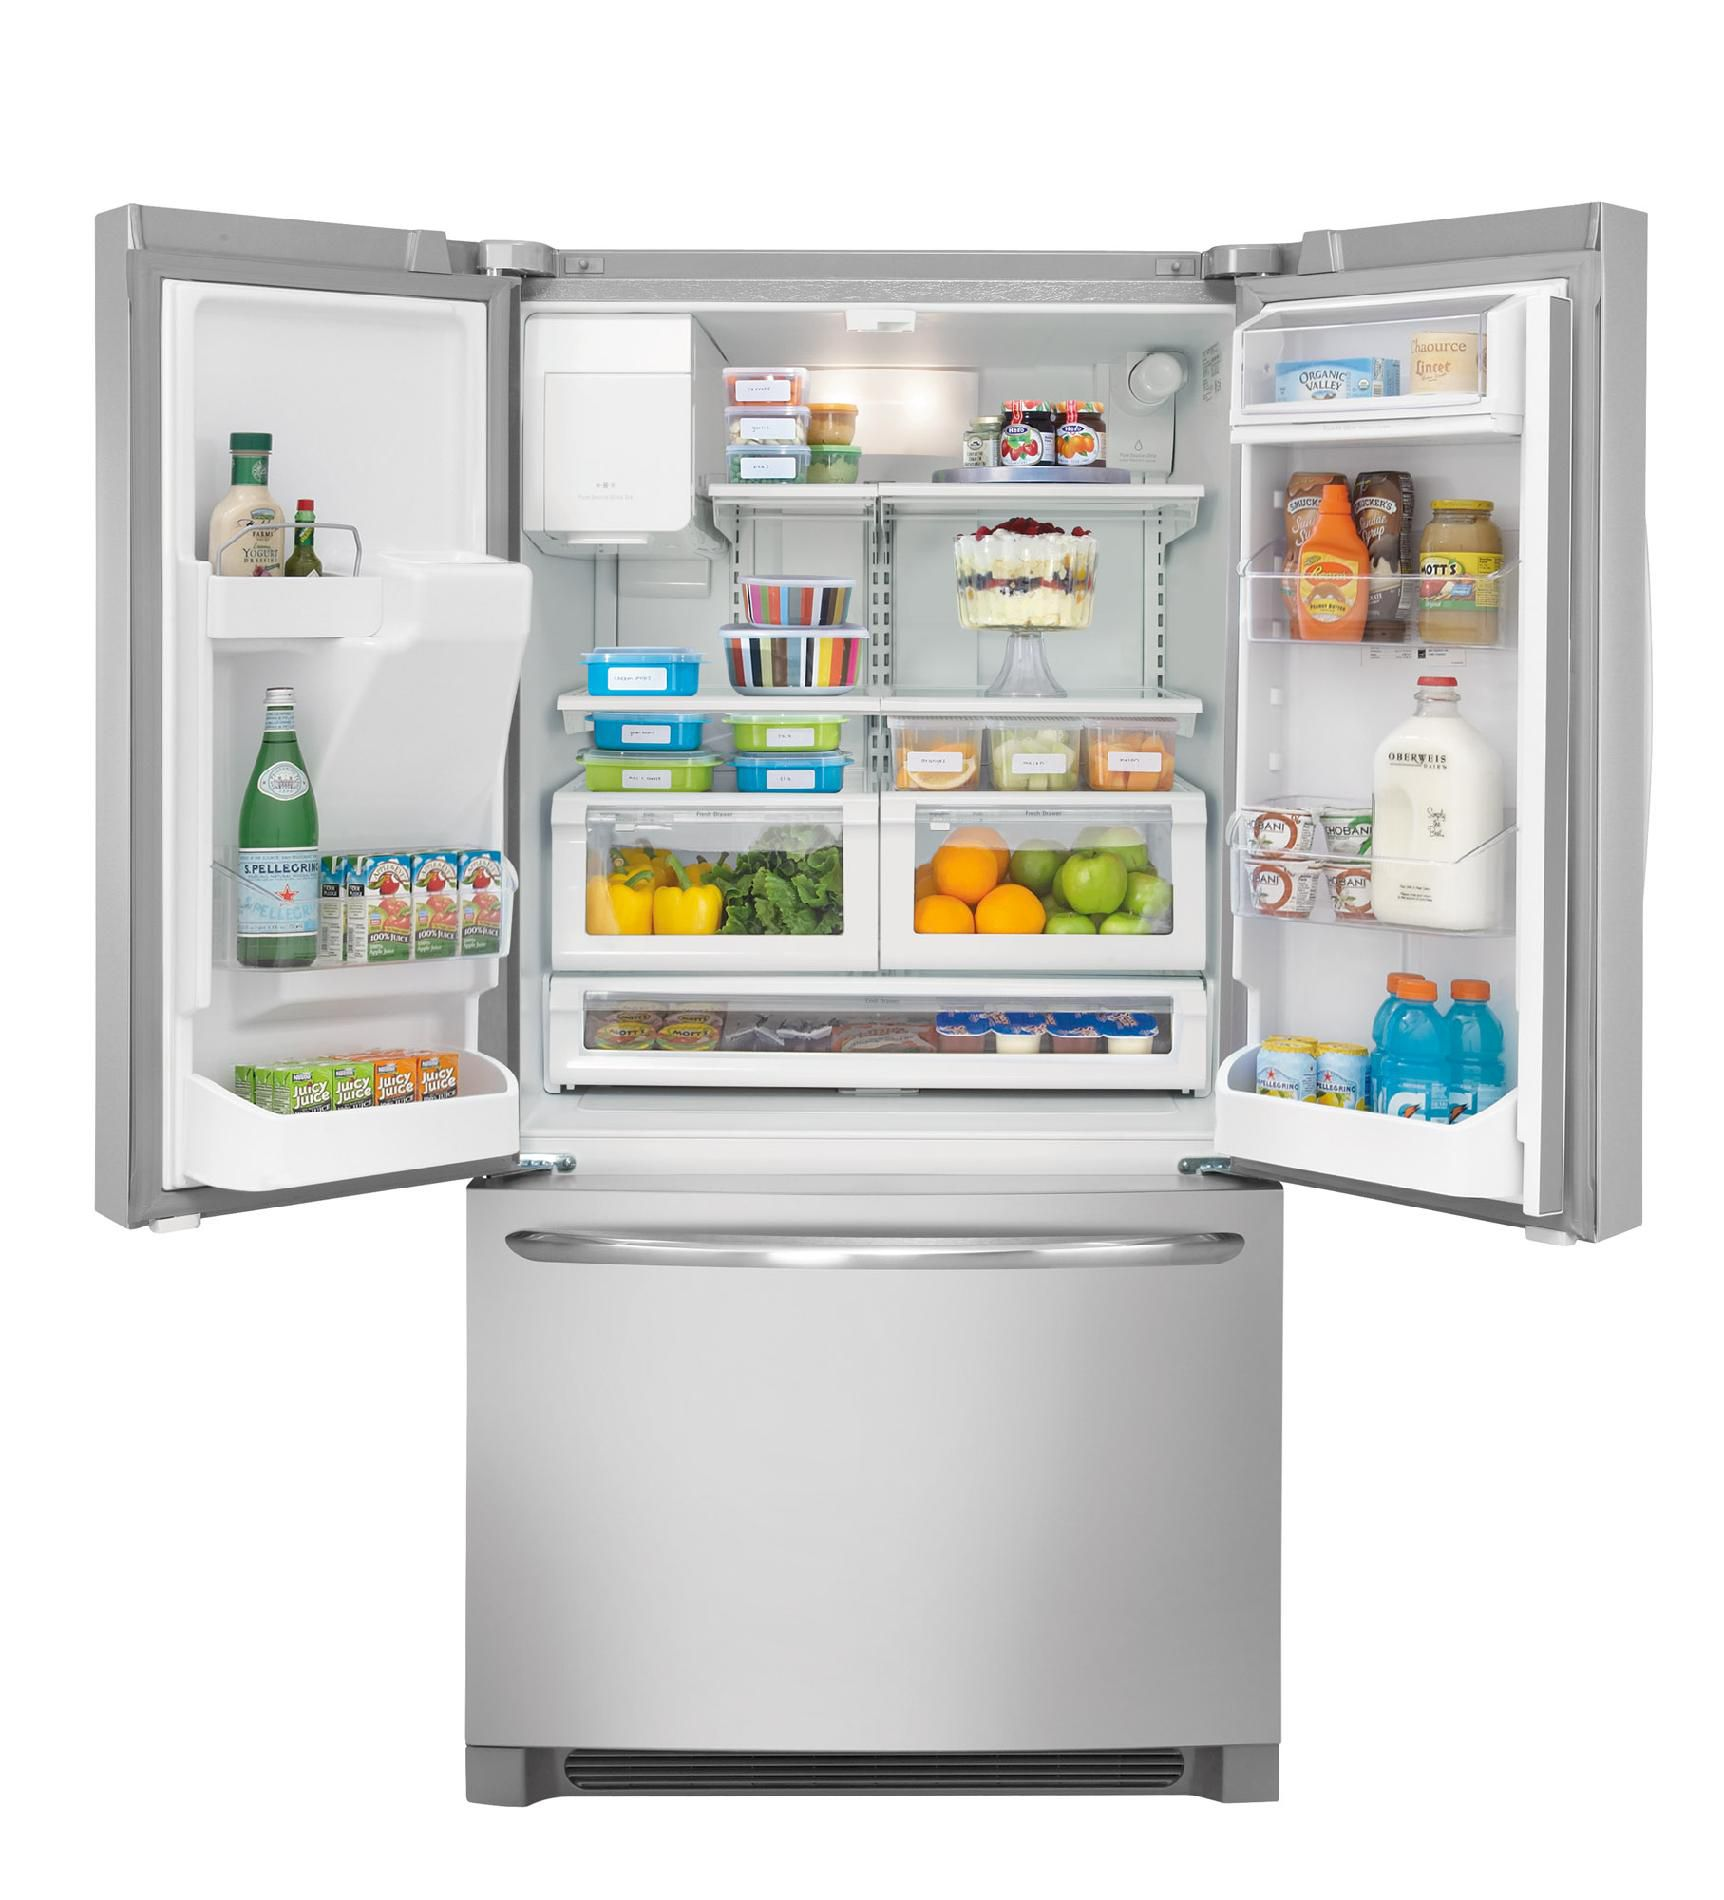 Frigidaire 22.6 cu. ft. French-Door Counter-Depth Refrigerator - Stainless Steel